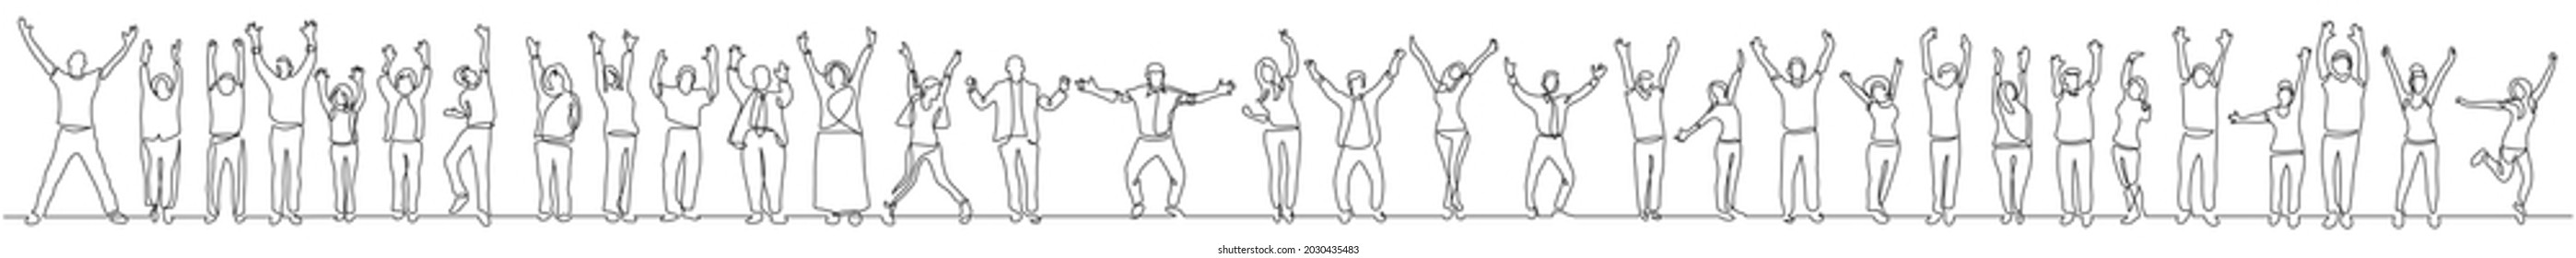 continuous line drawing of group of diverse happy people standing hands up